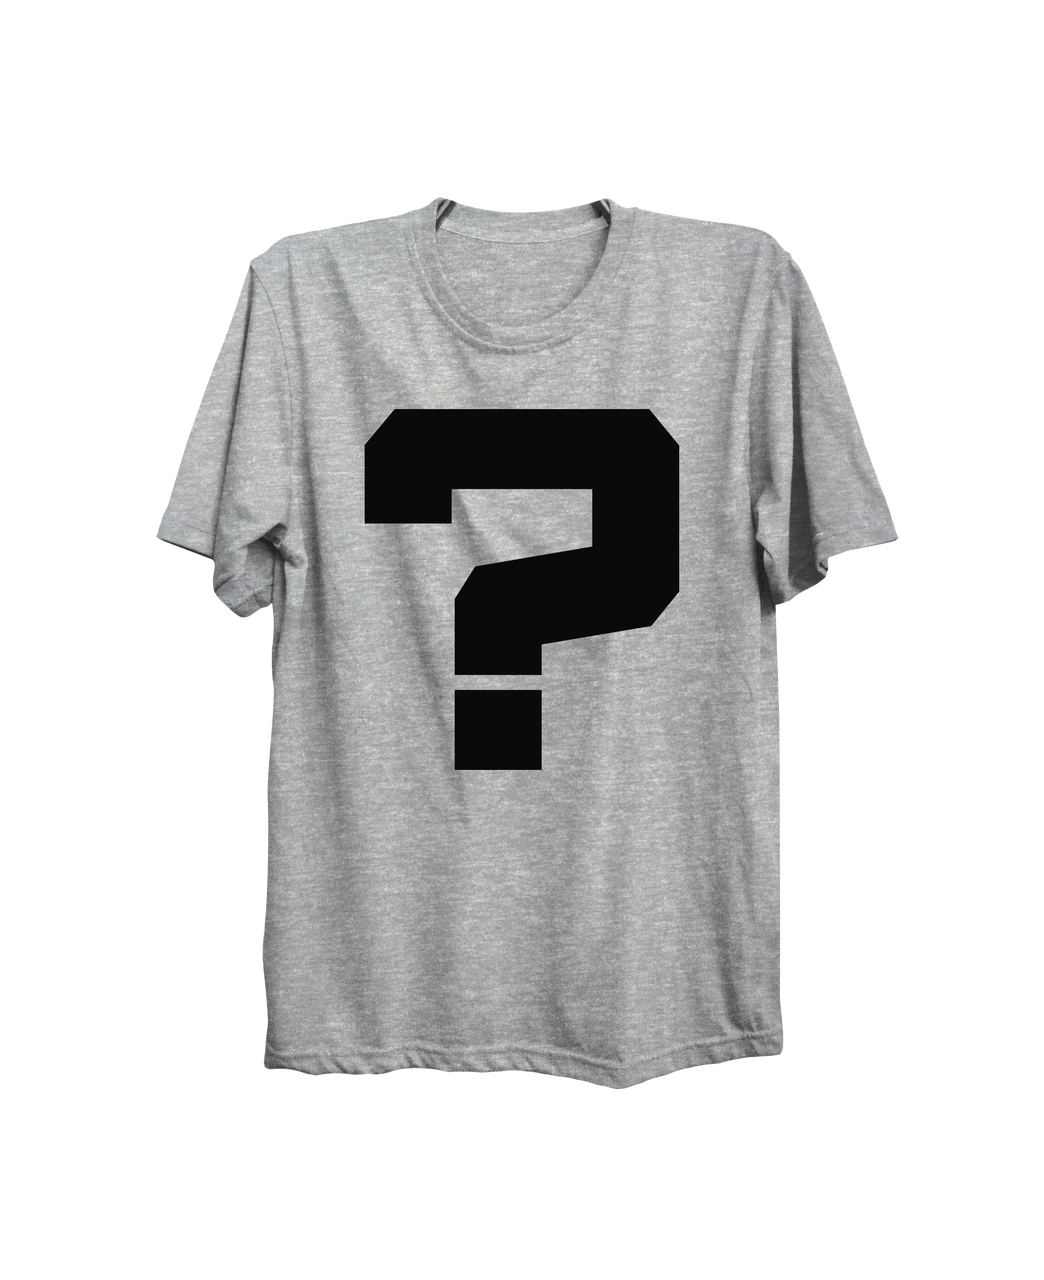 45b4aed59a42 Mystery Shirts · Mystery Shirts. Size: Required S